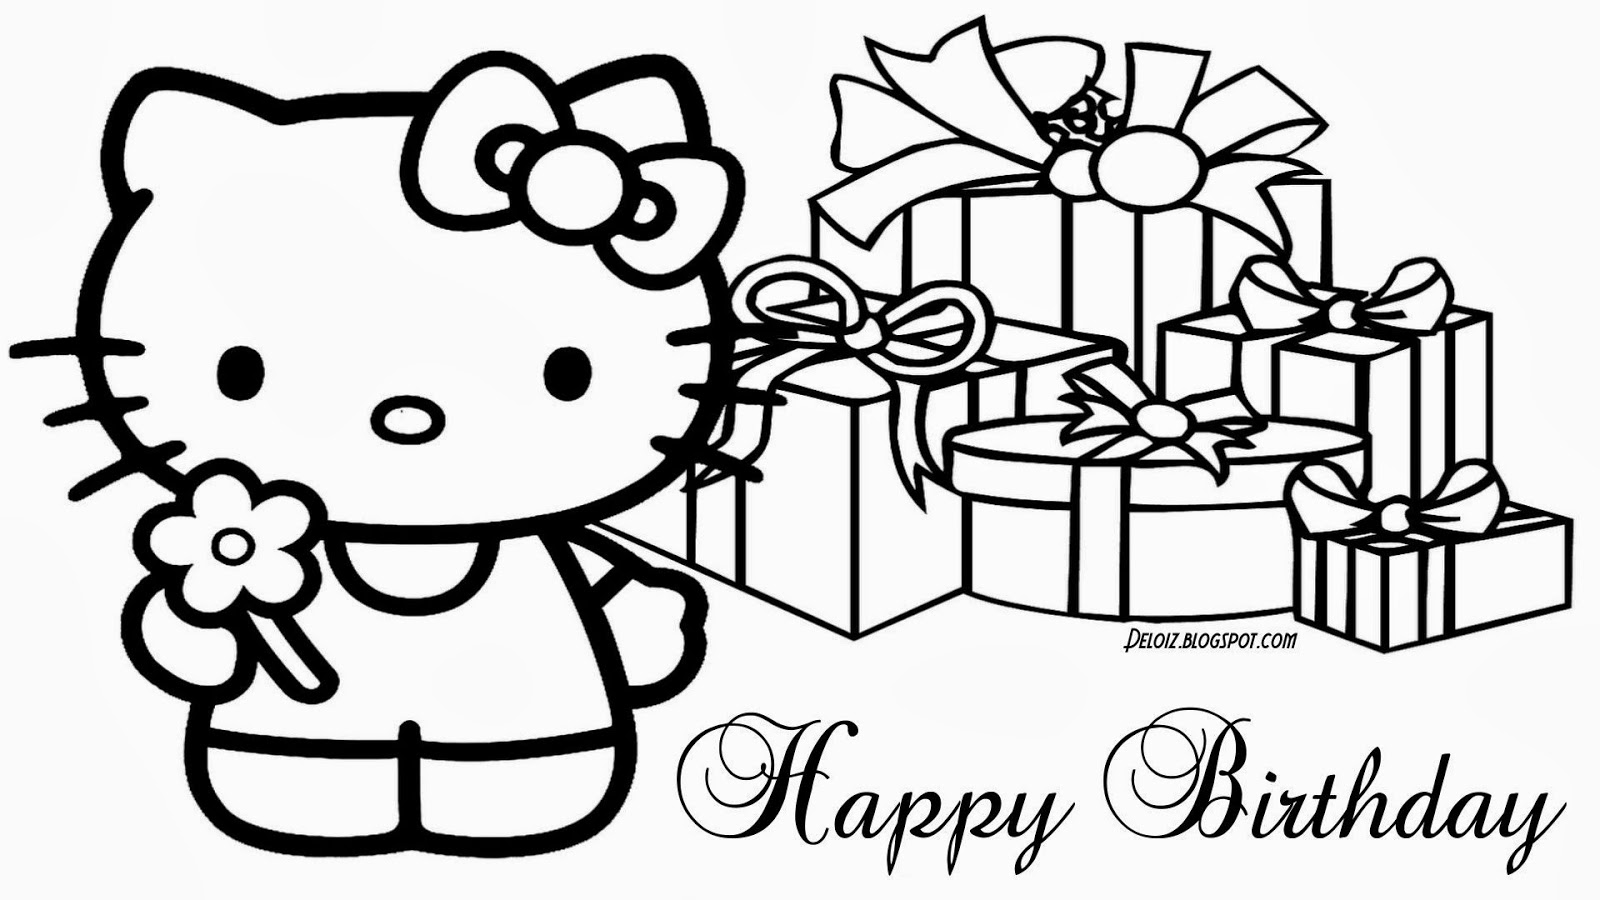 Ashley Wallpaper Gambar Hello Kitty Untuk Diwarnai